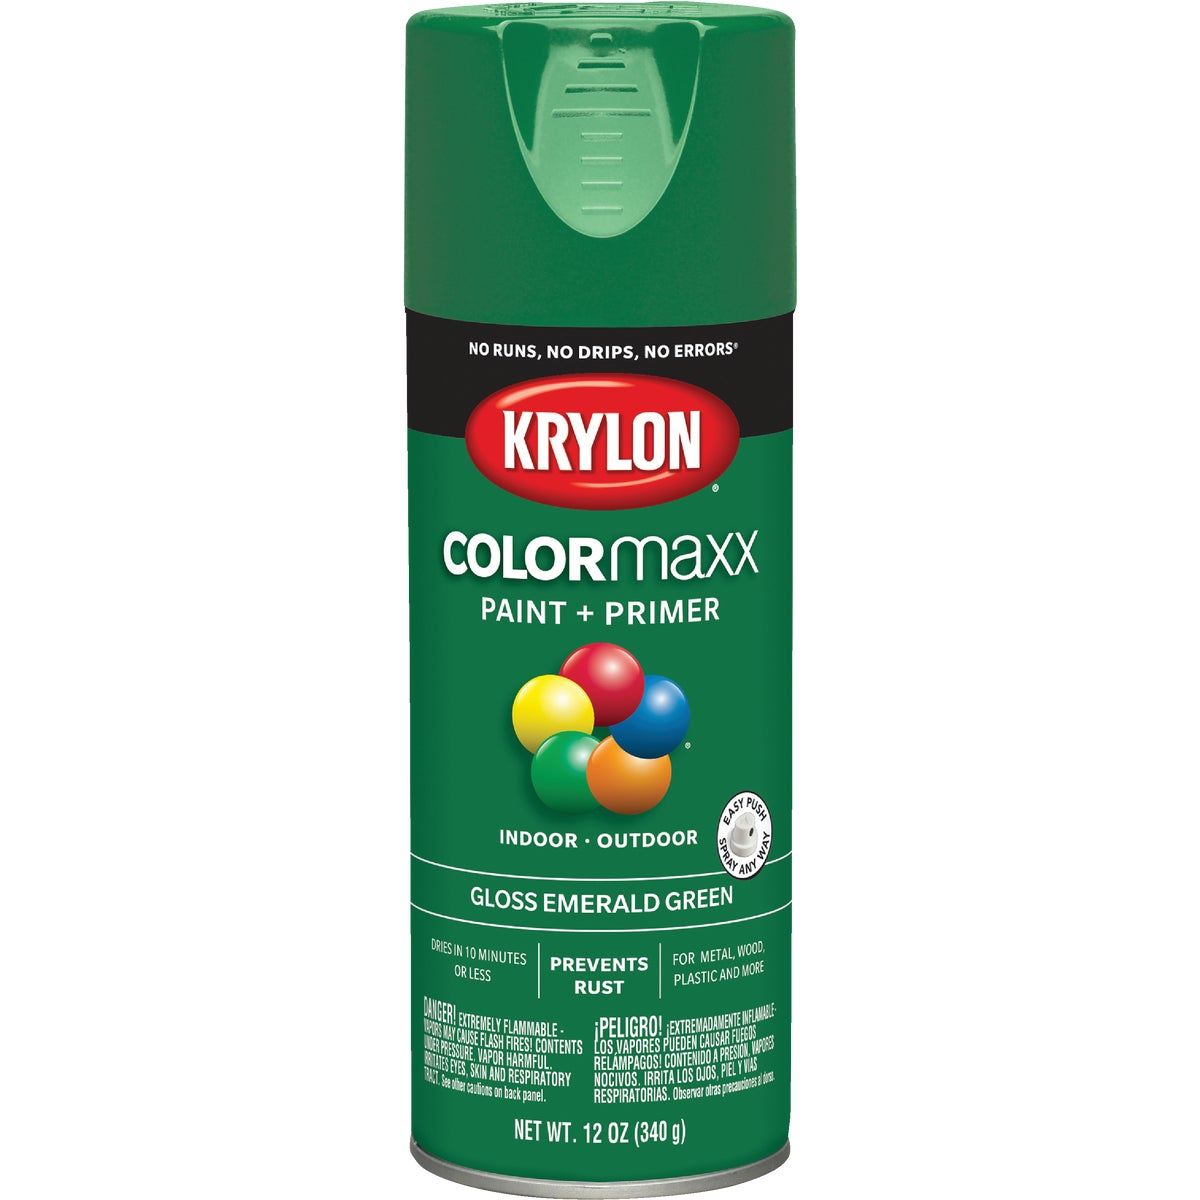 GLS EMRL GRN SPRAY PAINT - 52016 by Krylon/consumer Div